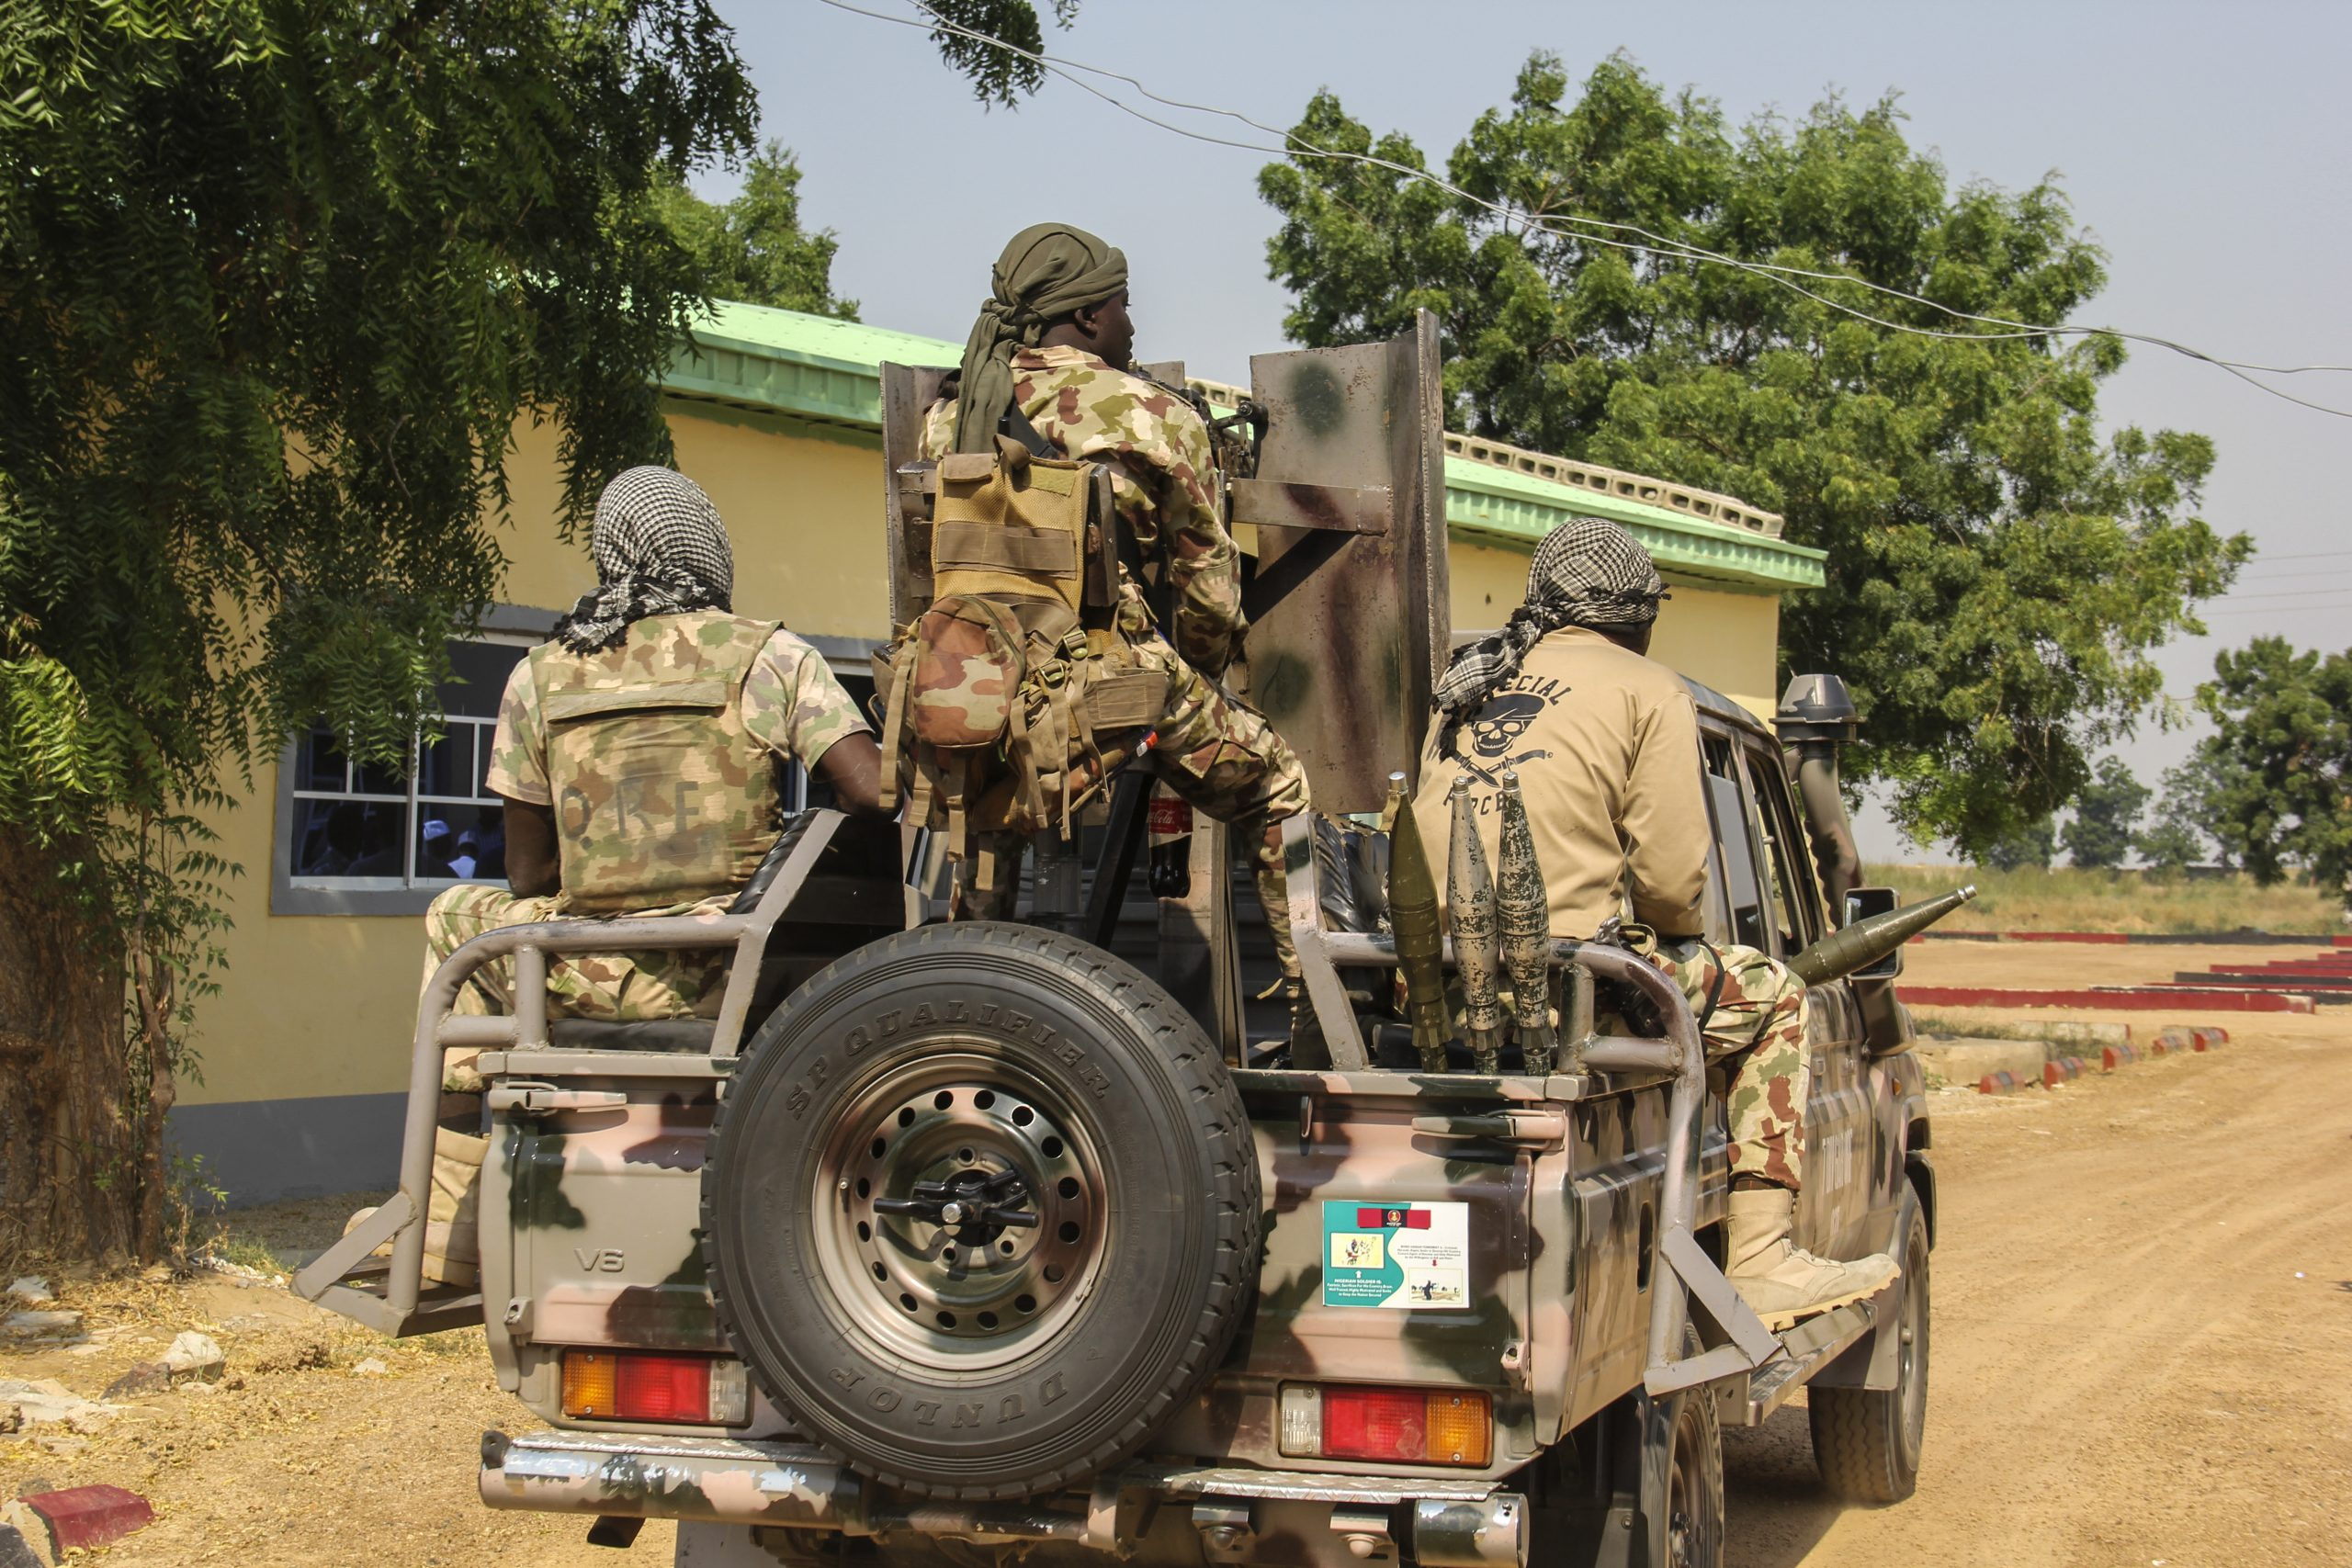 The missing loggers were presumed kidnapped by Boko Haram, who are known to maintain camps in the forest